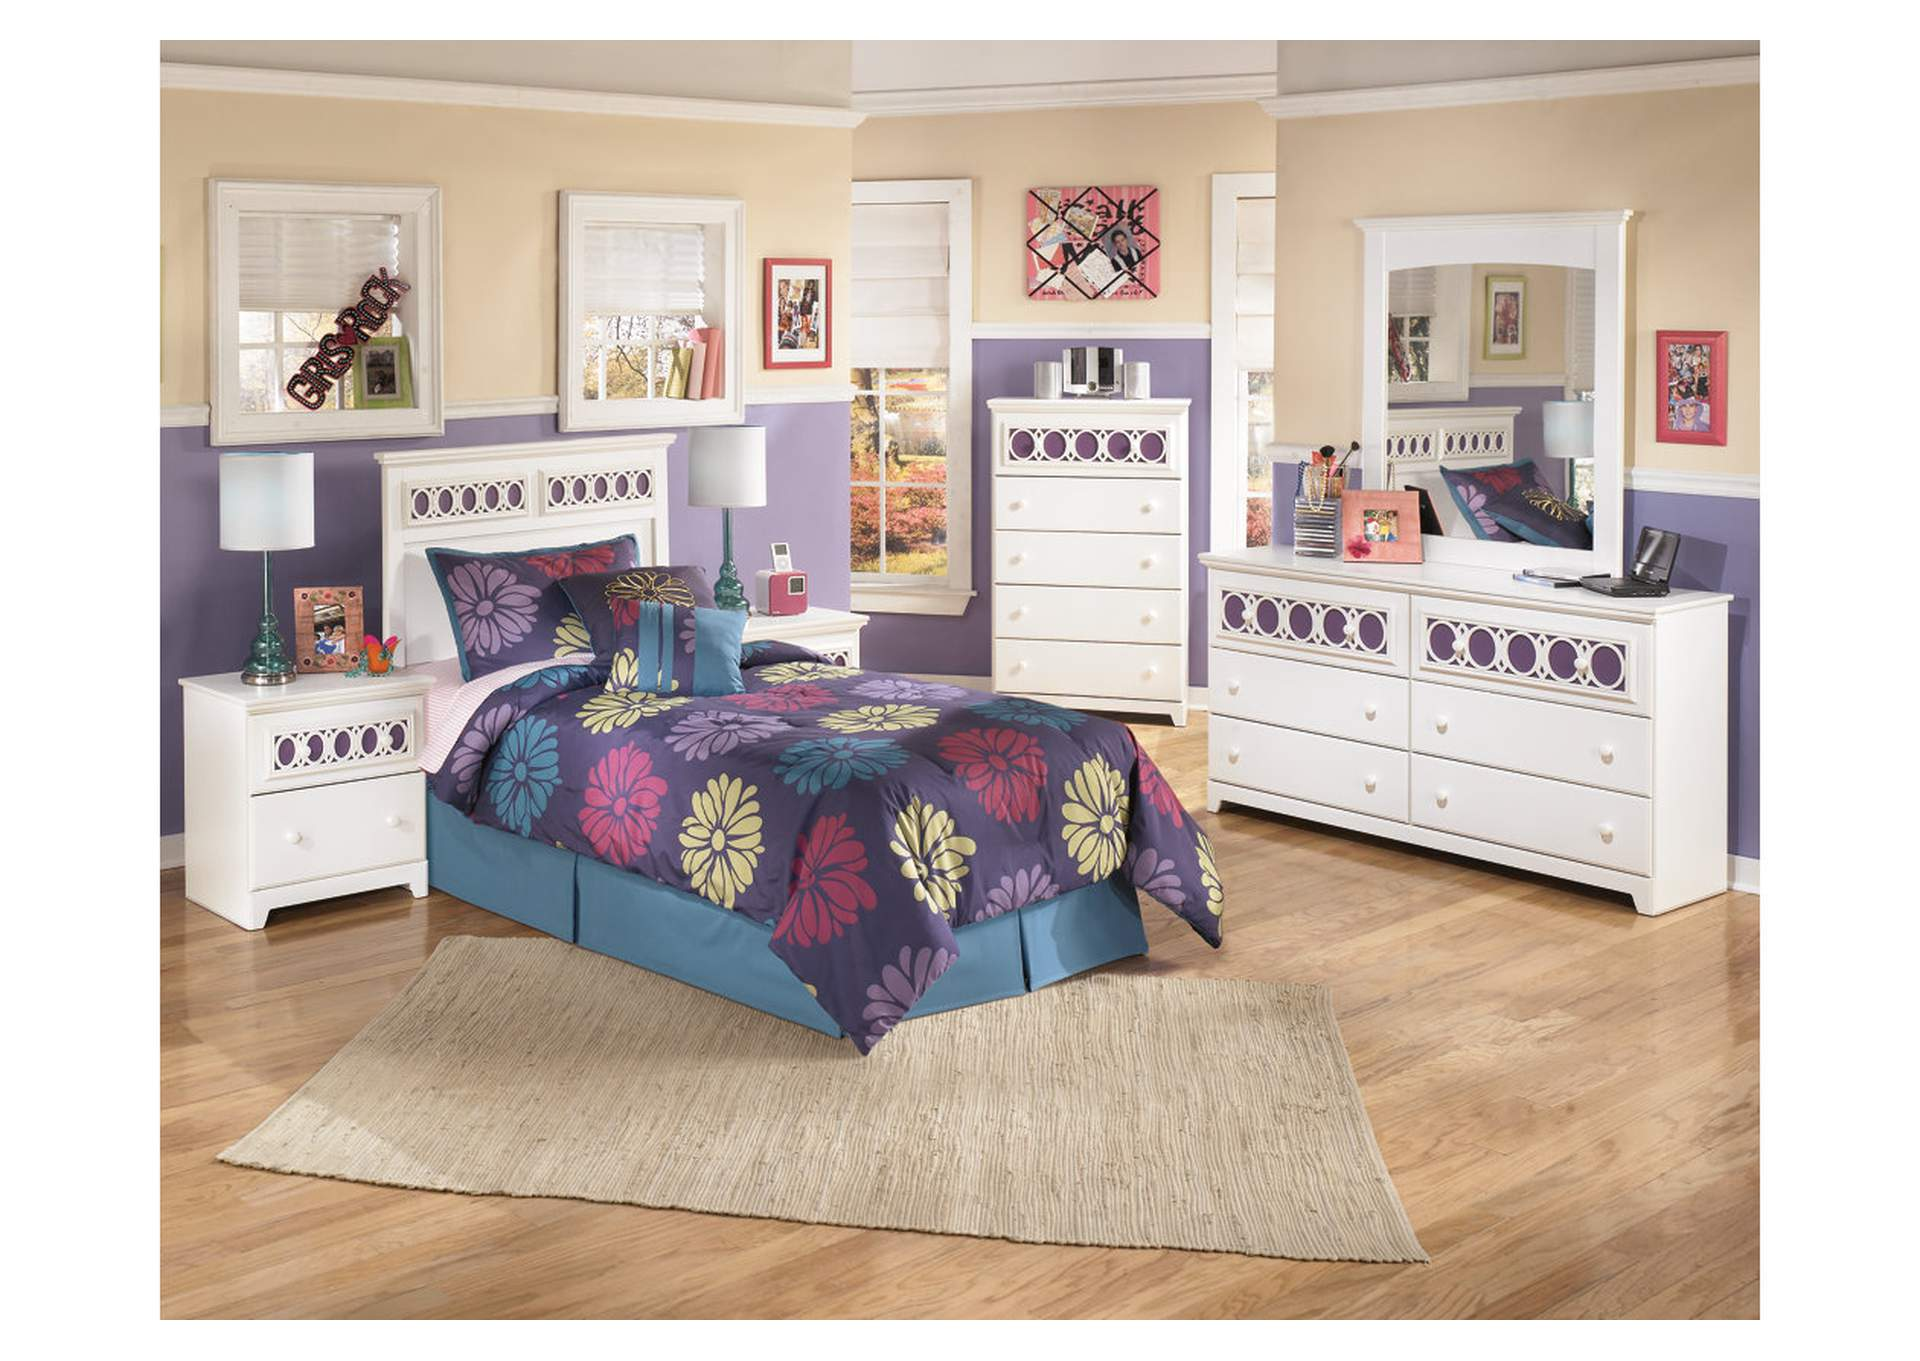 Zayley Twin Panel Headboard, Dresser, Mirror, Drawer Chest & Nightstand,Signature Design by Ashley